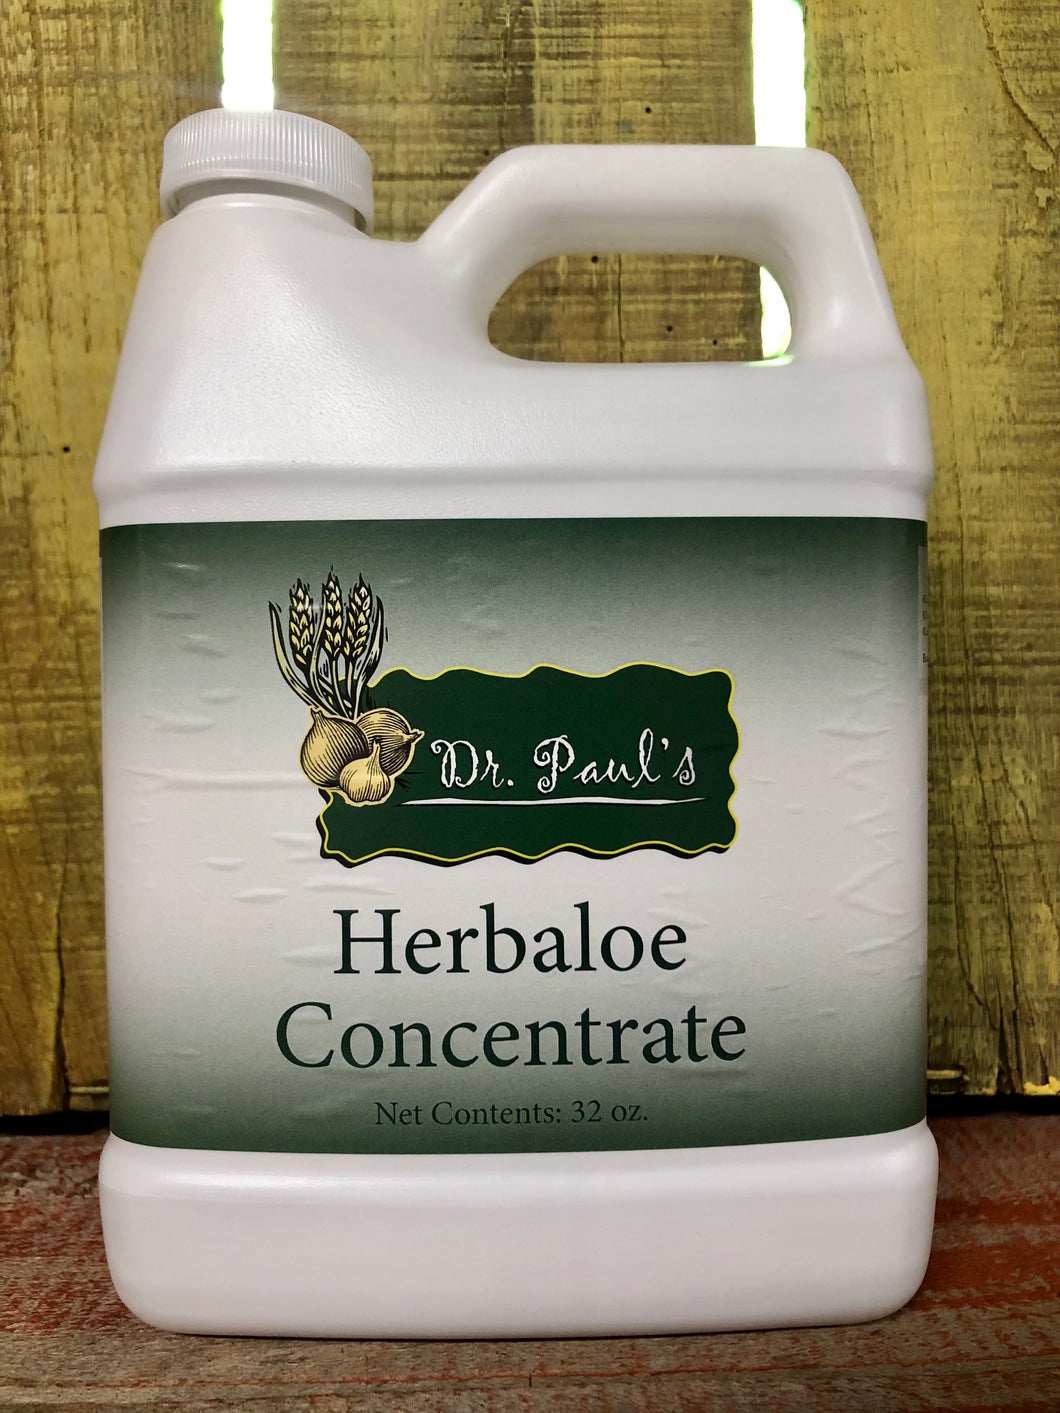 Herbaloe Concentrate